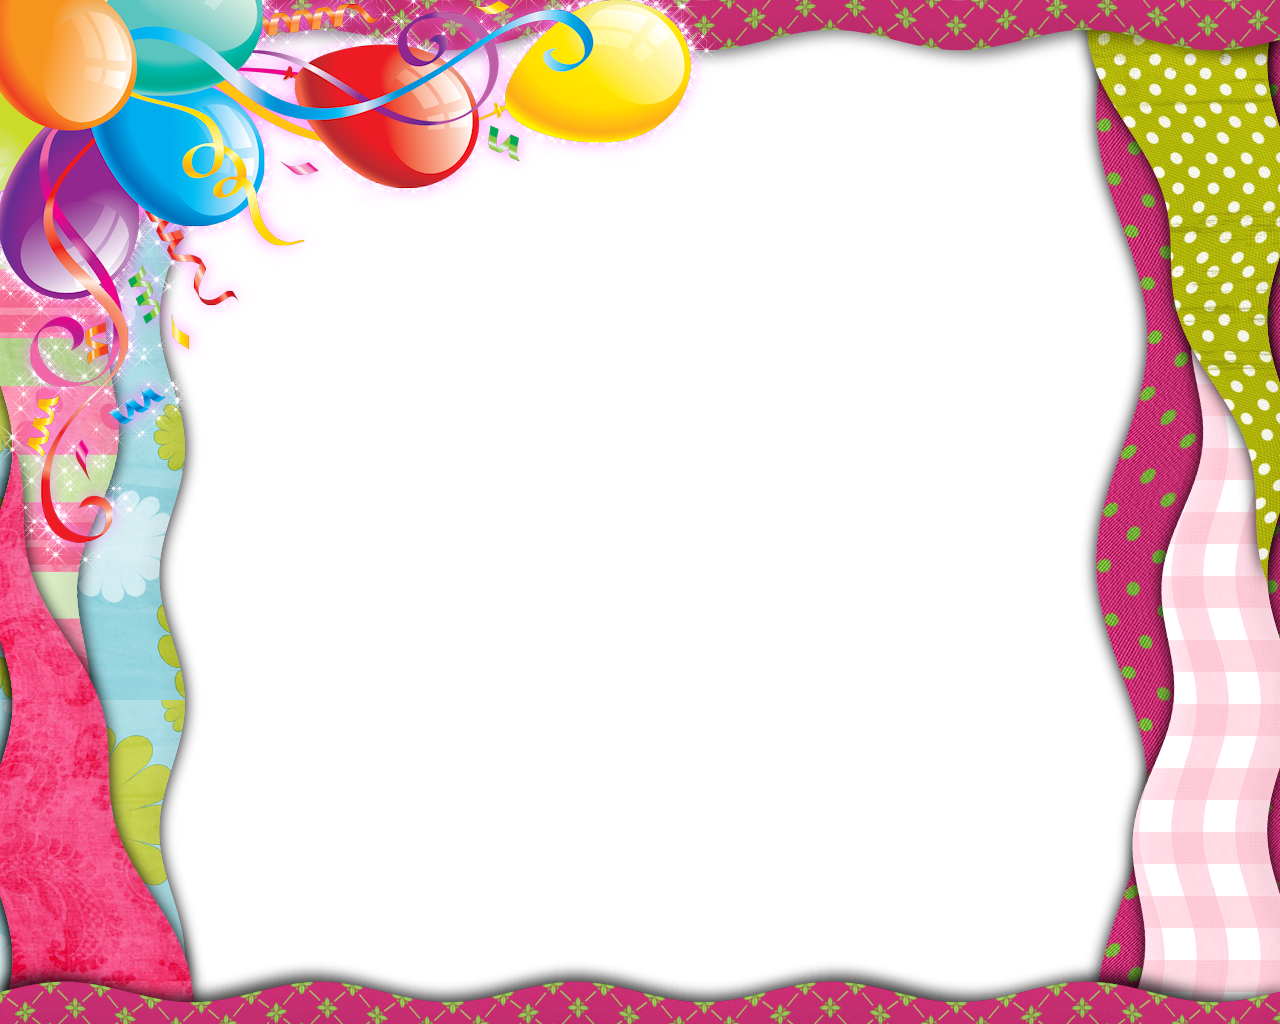 png black and white download Balloon borders clipart. Birthday border png google.